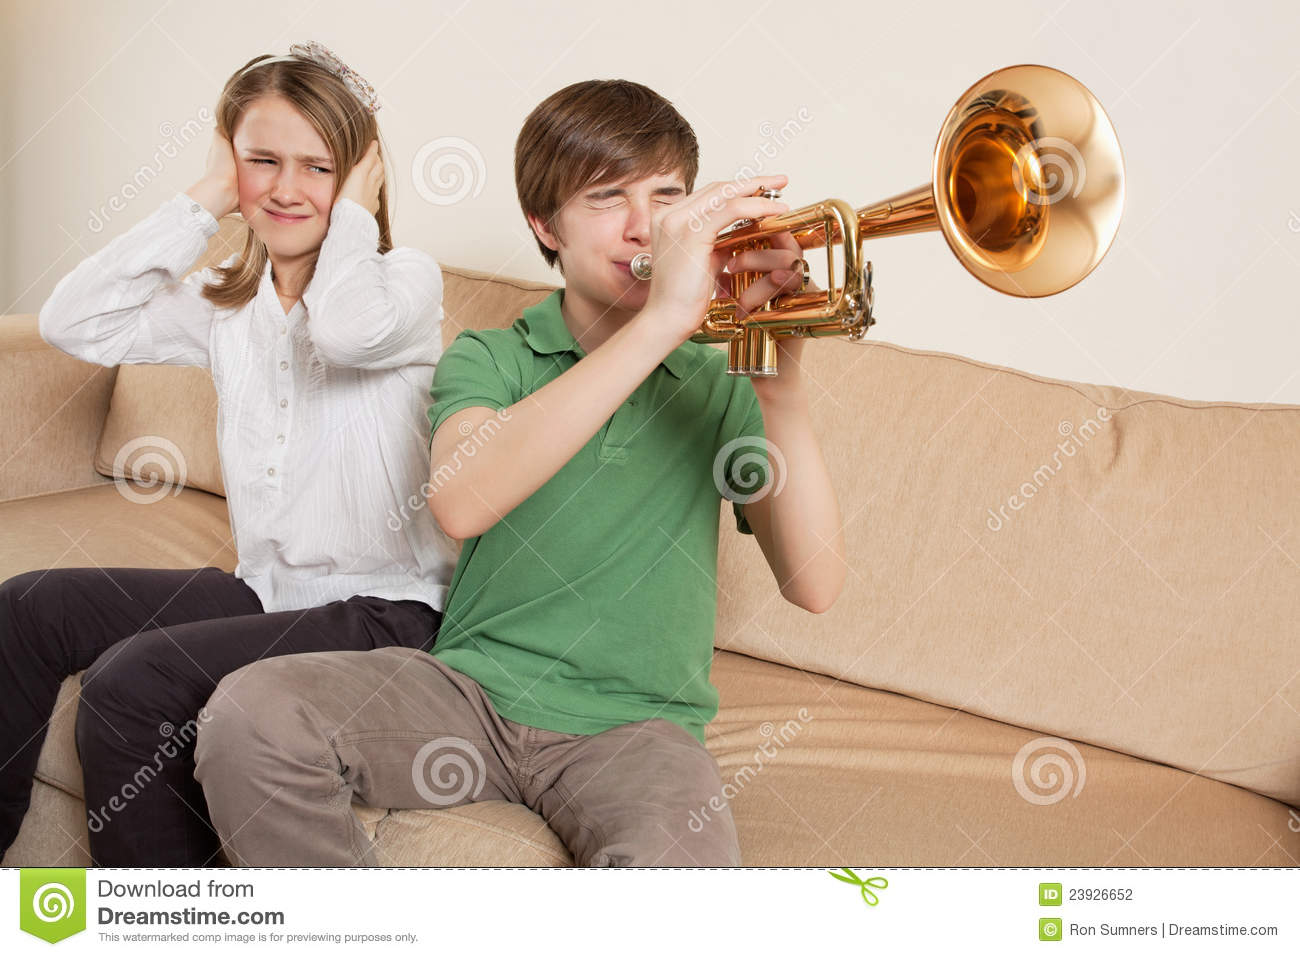 Annoying Trumpet Player Stock Photo Image Of Annoying